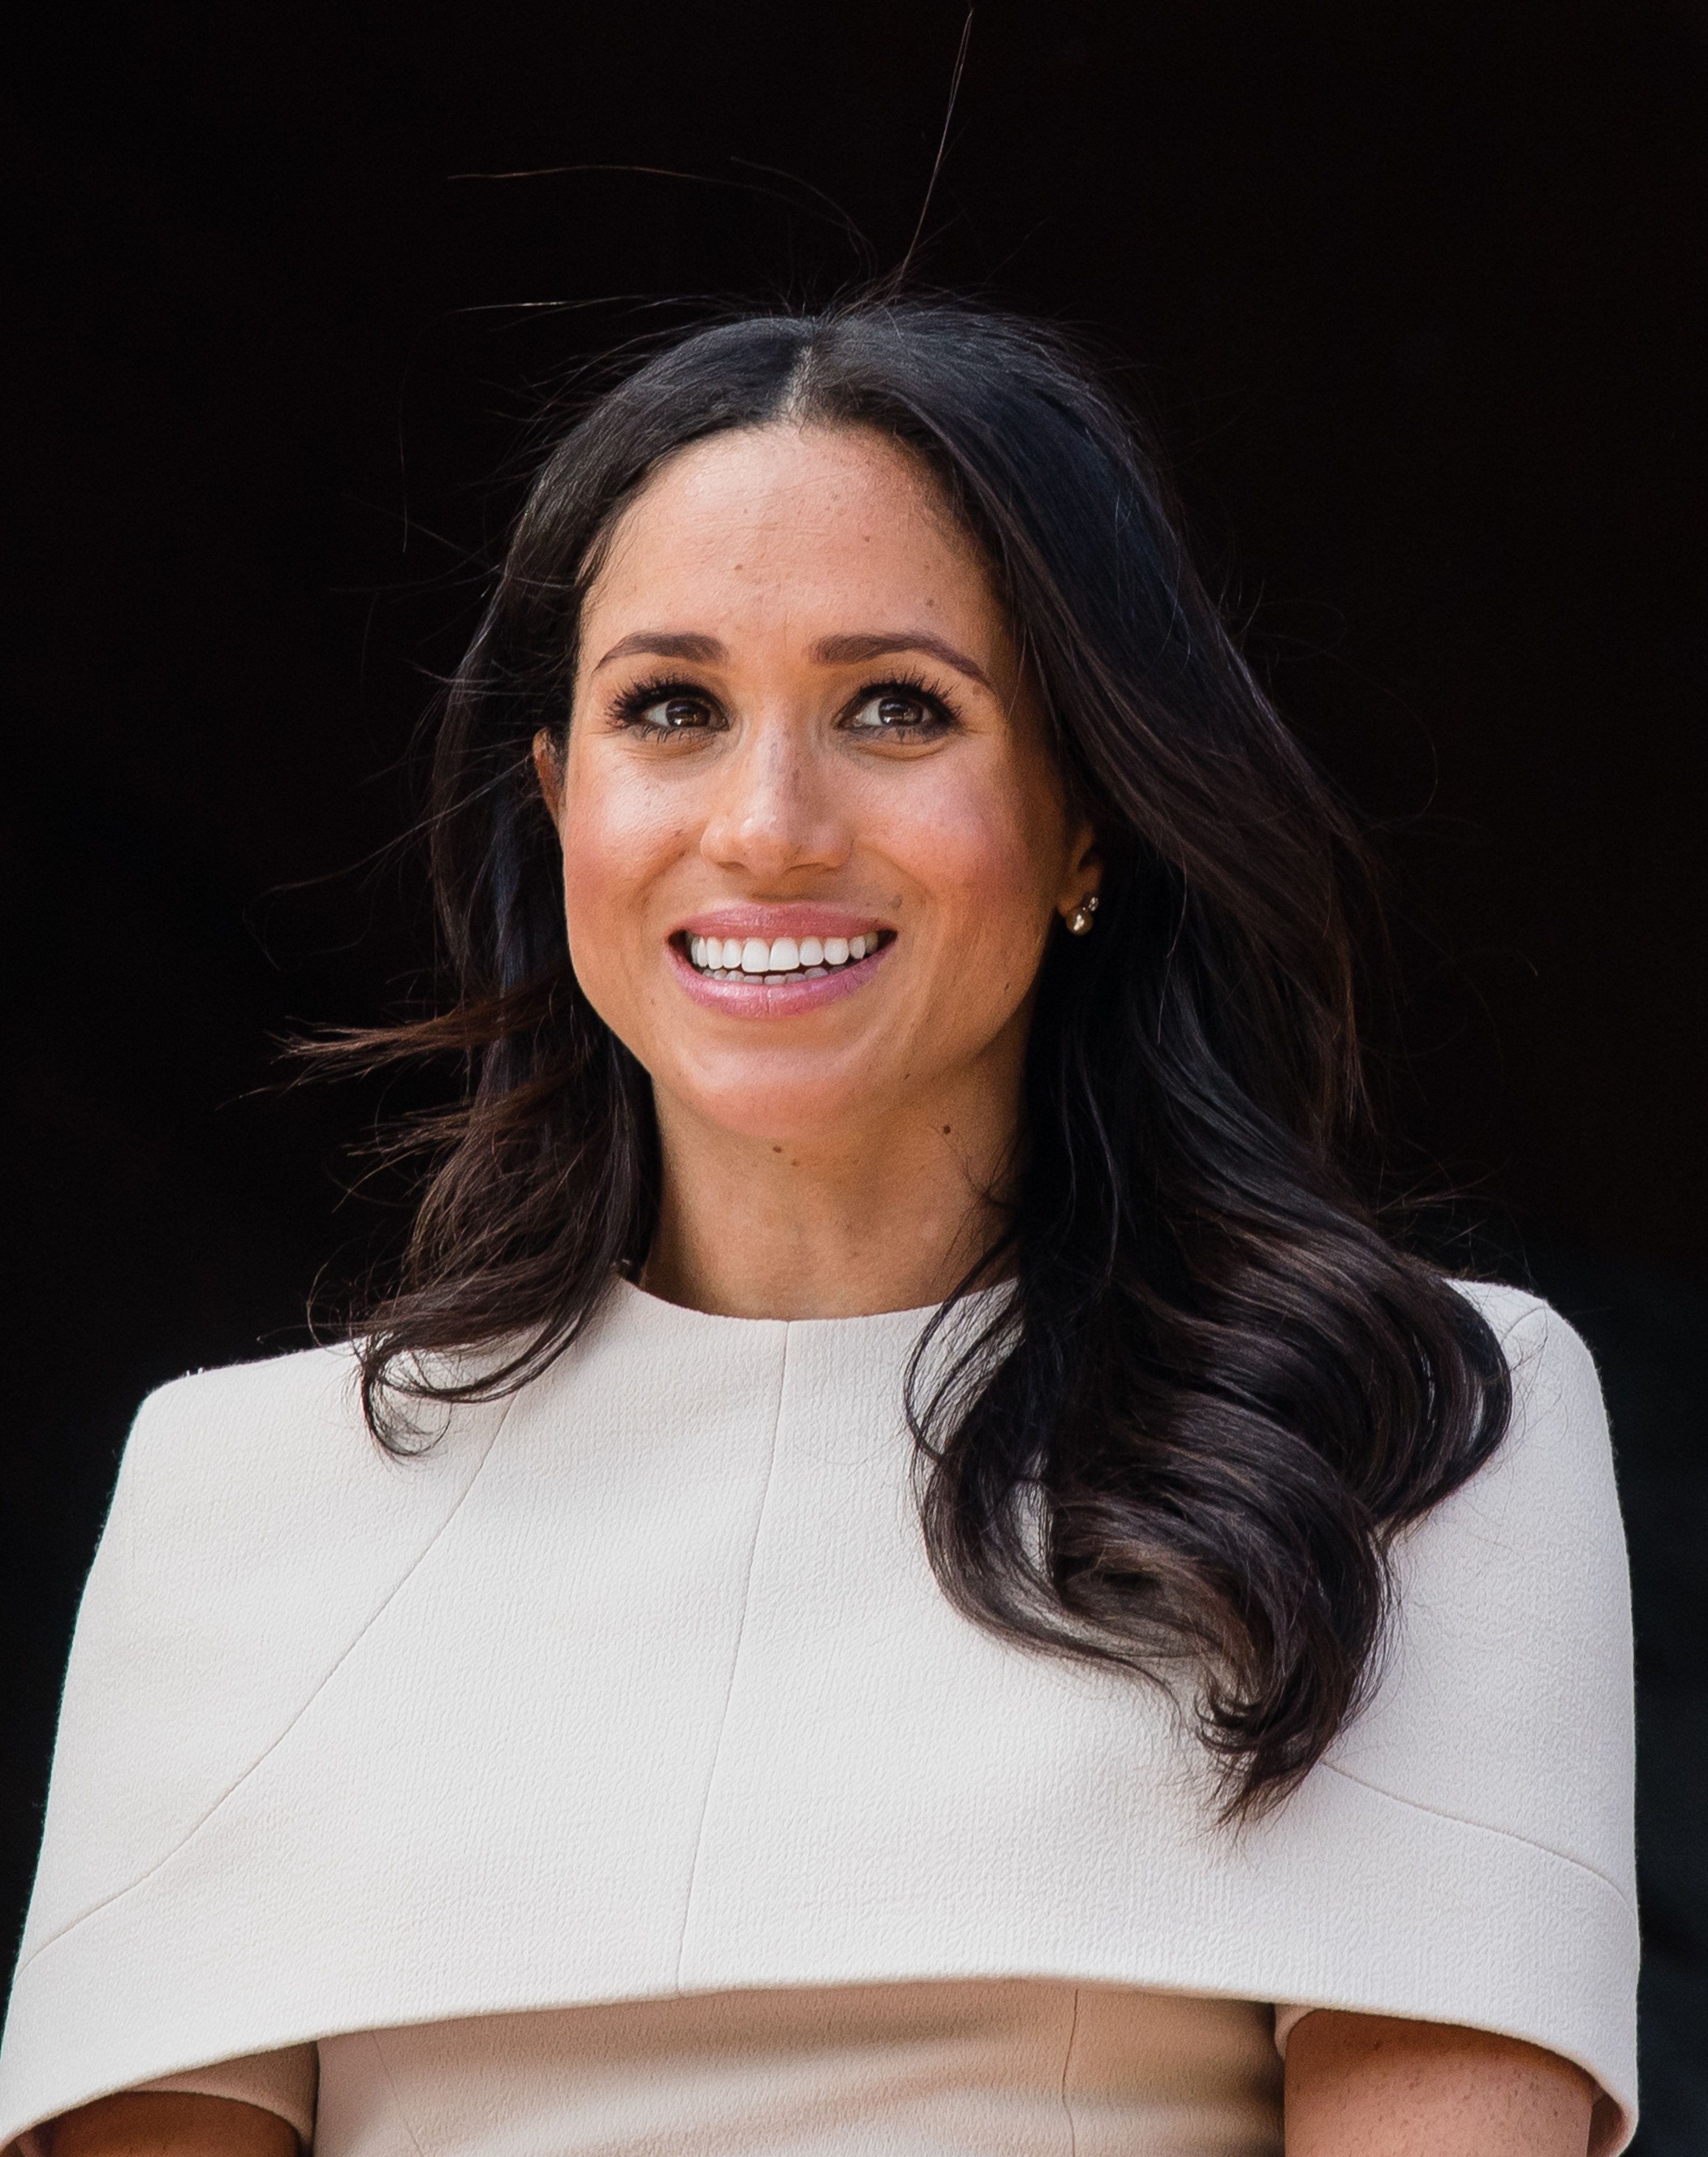 Meghan, Duchess of Sussex, has remained largely silent as her family members selltheir stories to the press.